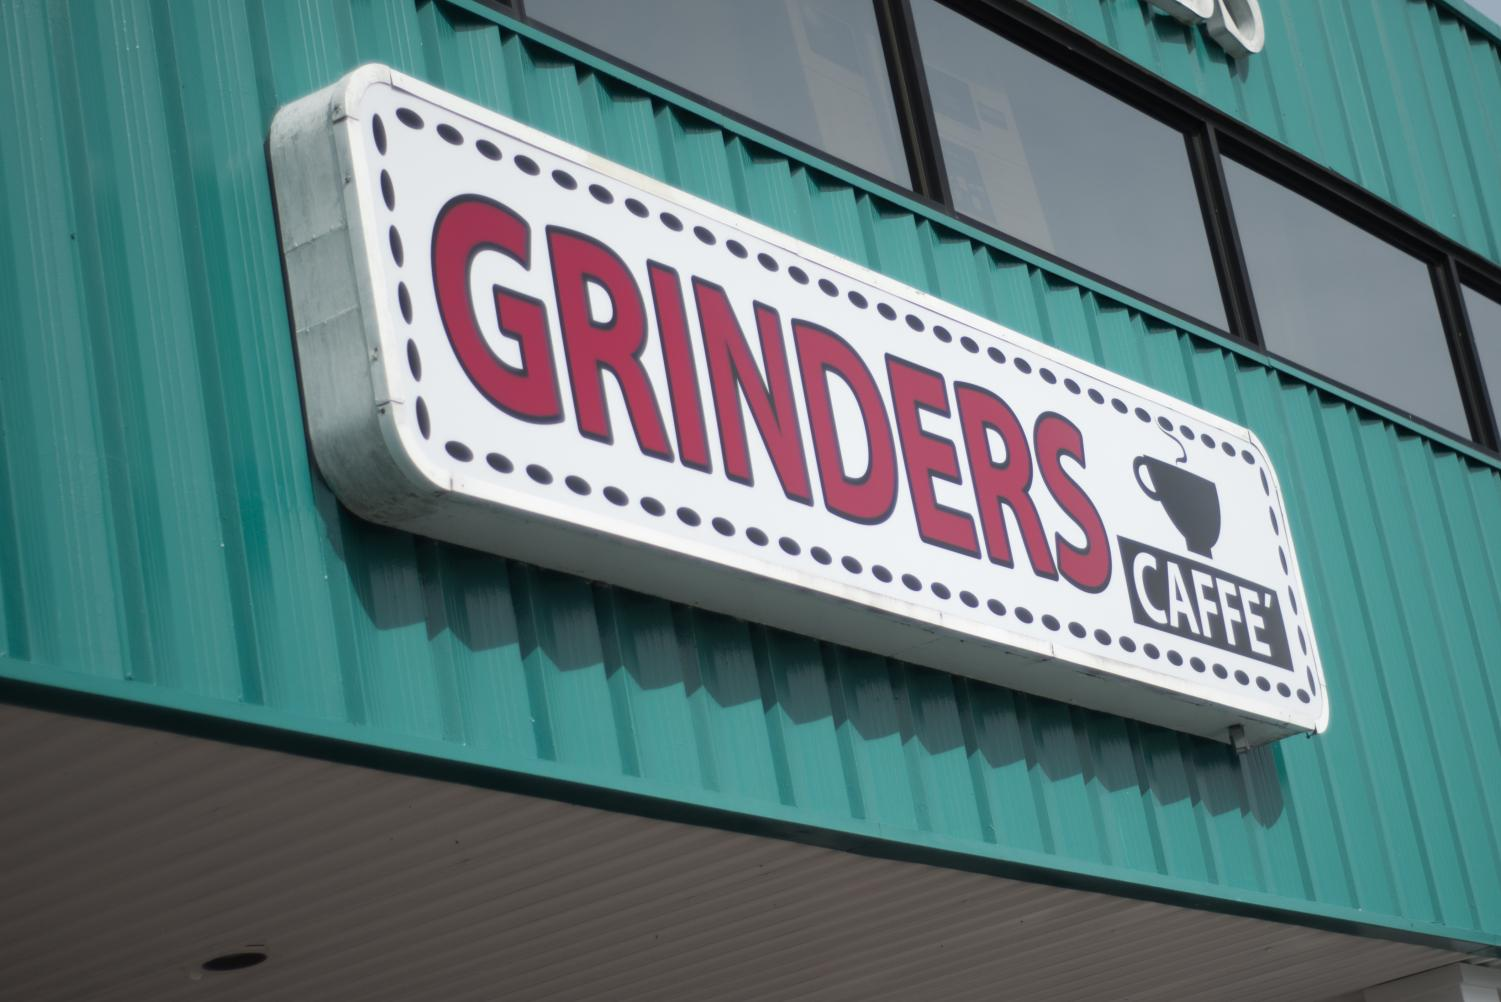 The Grinders Caffe' recently opened at a new location on S. Kerr Ave.